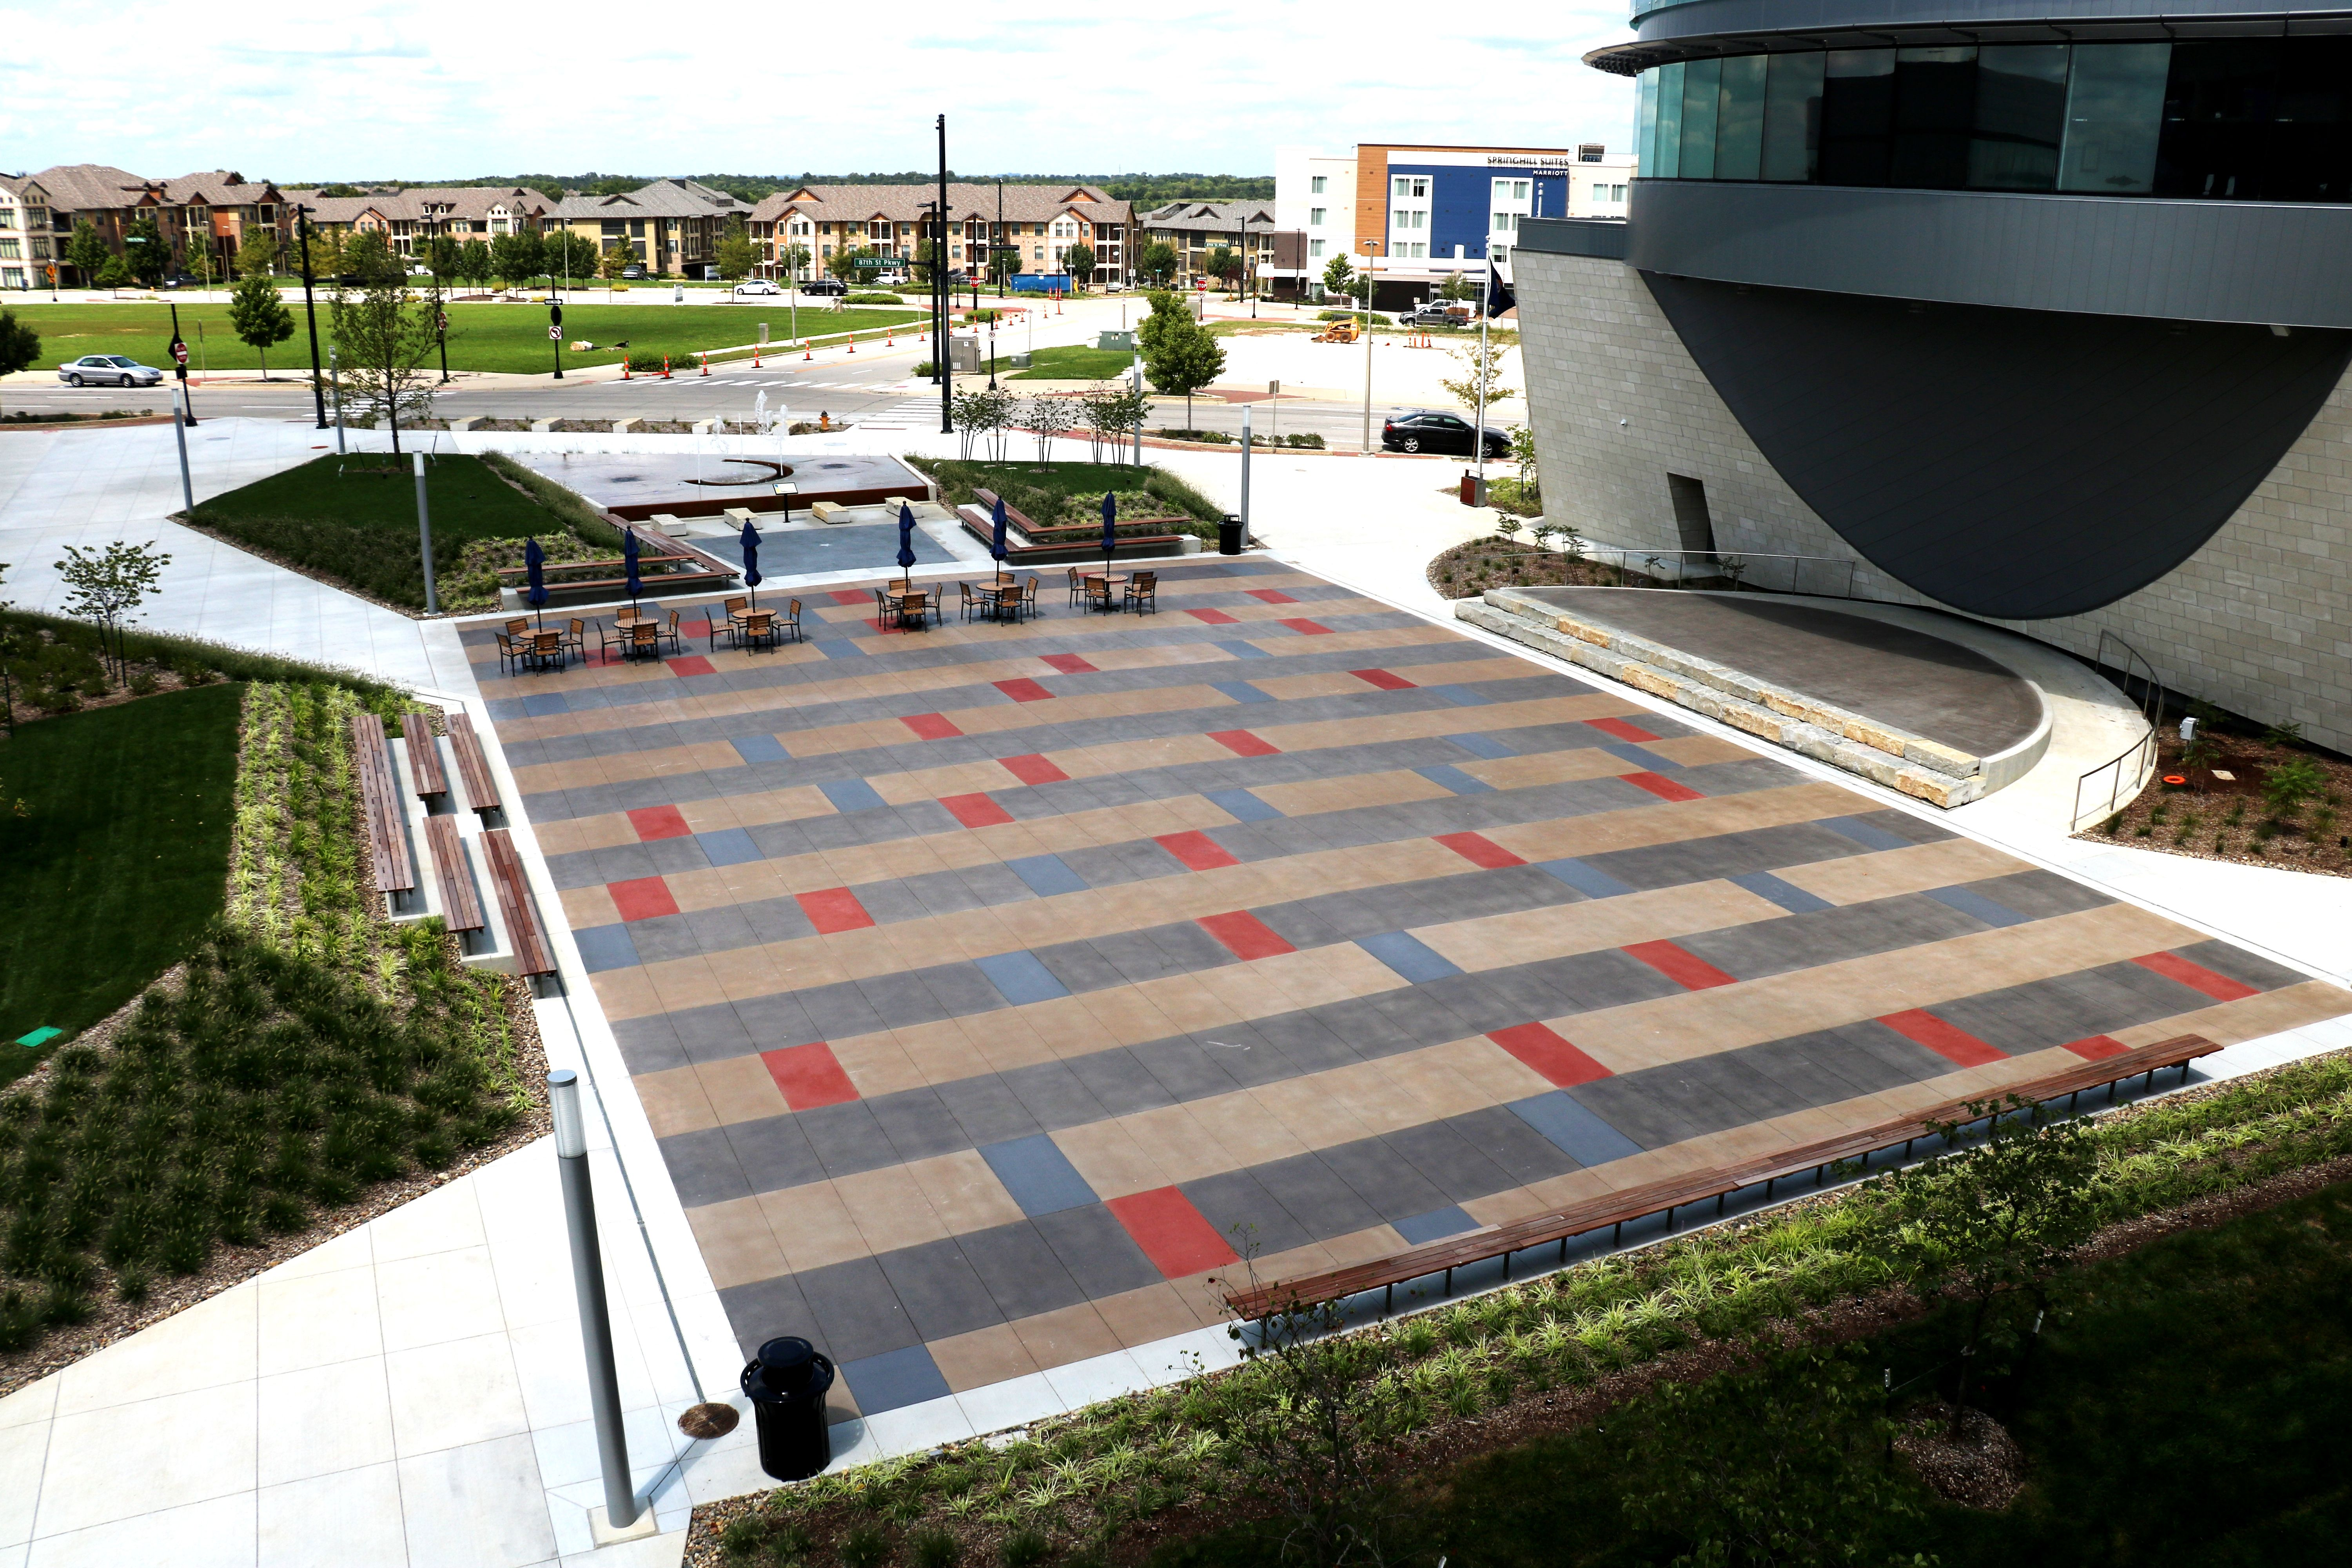 anite Sandscape Texture with Bomanite Con-Color is featured at the Lenexa Civic Center Festival Plaza and Bomanite Alloy at the History Node.